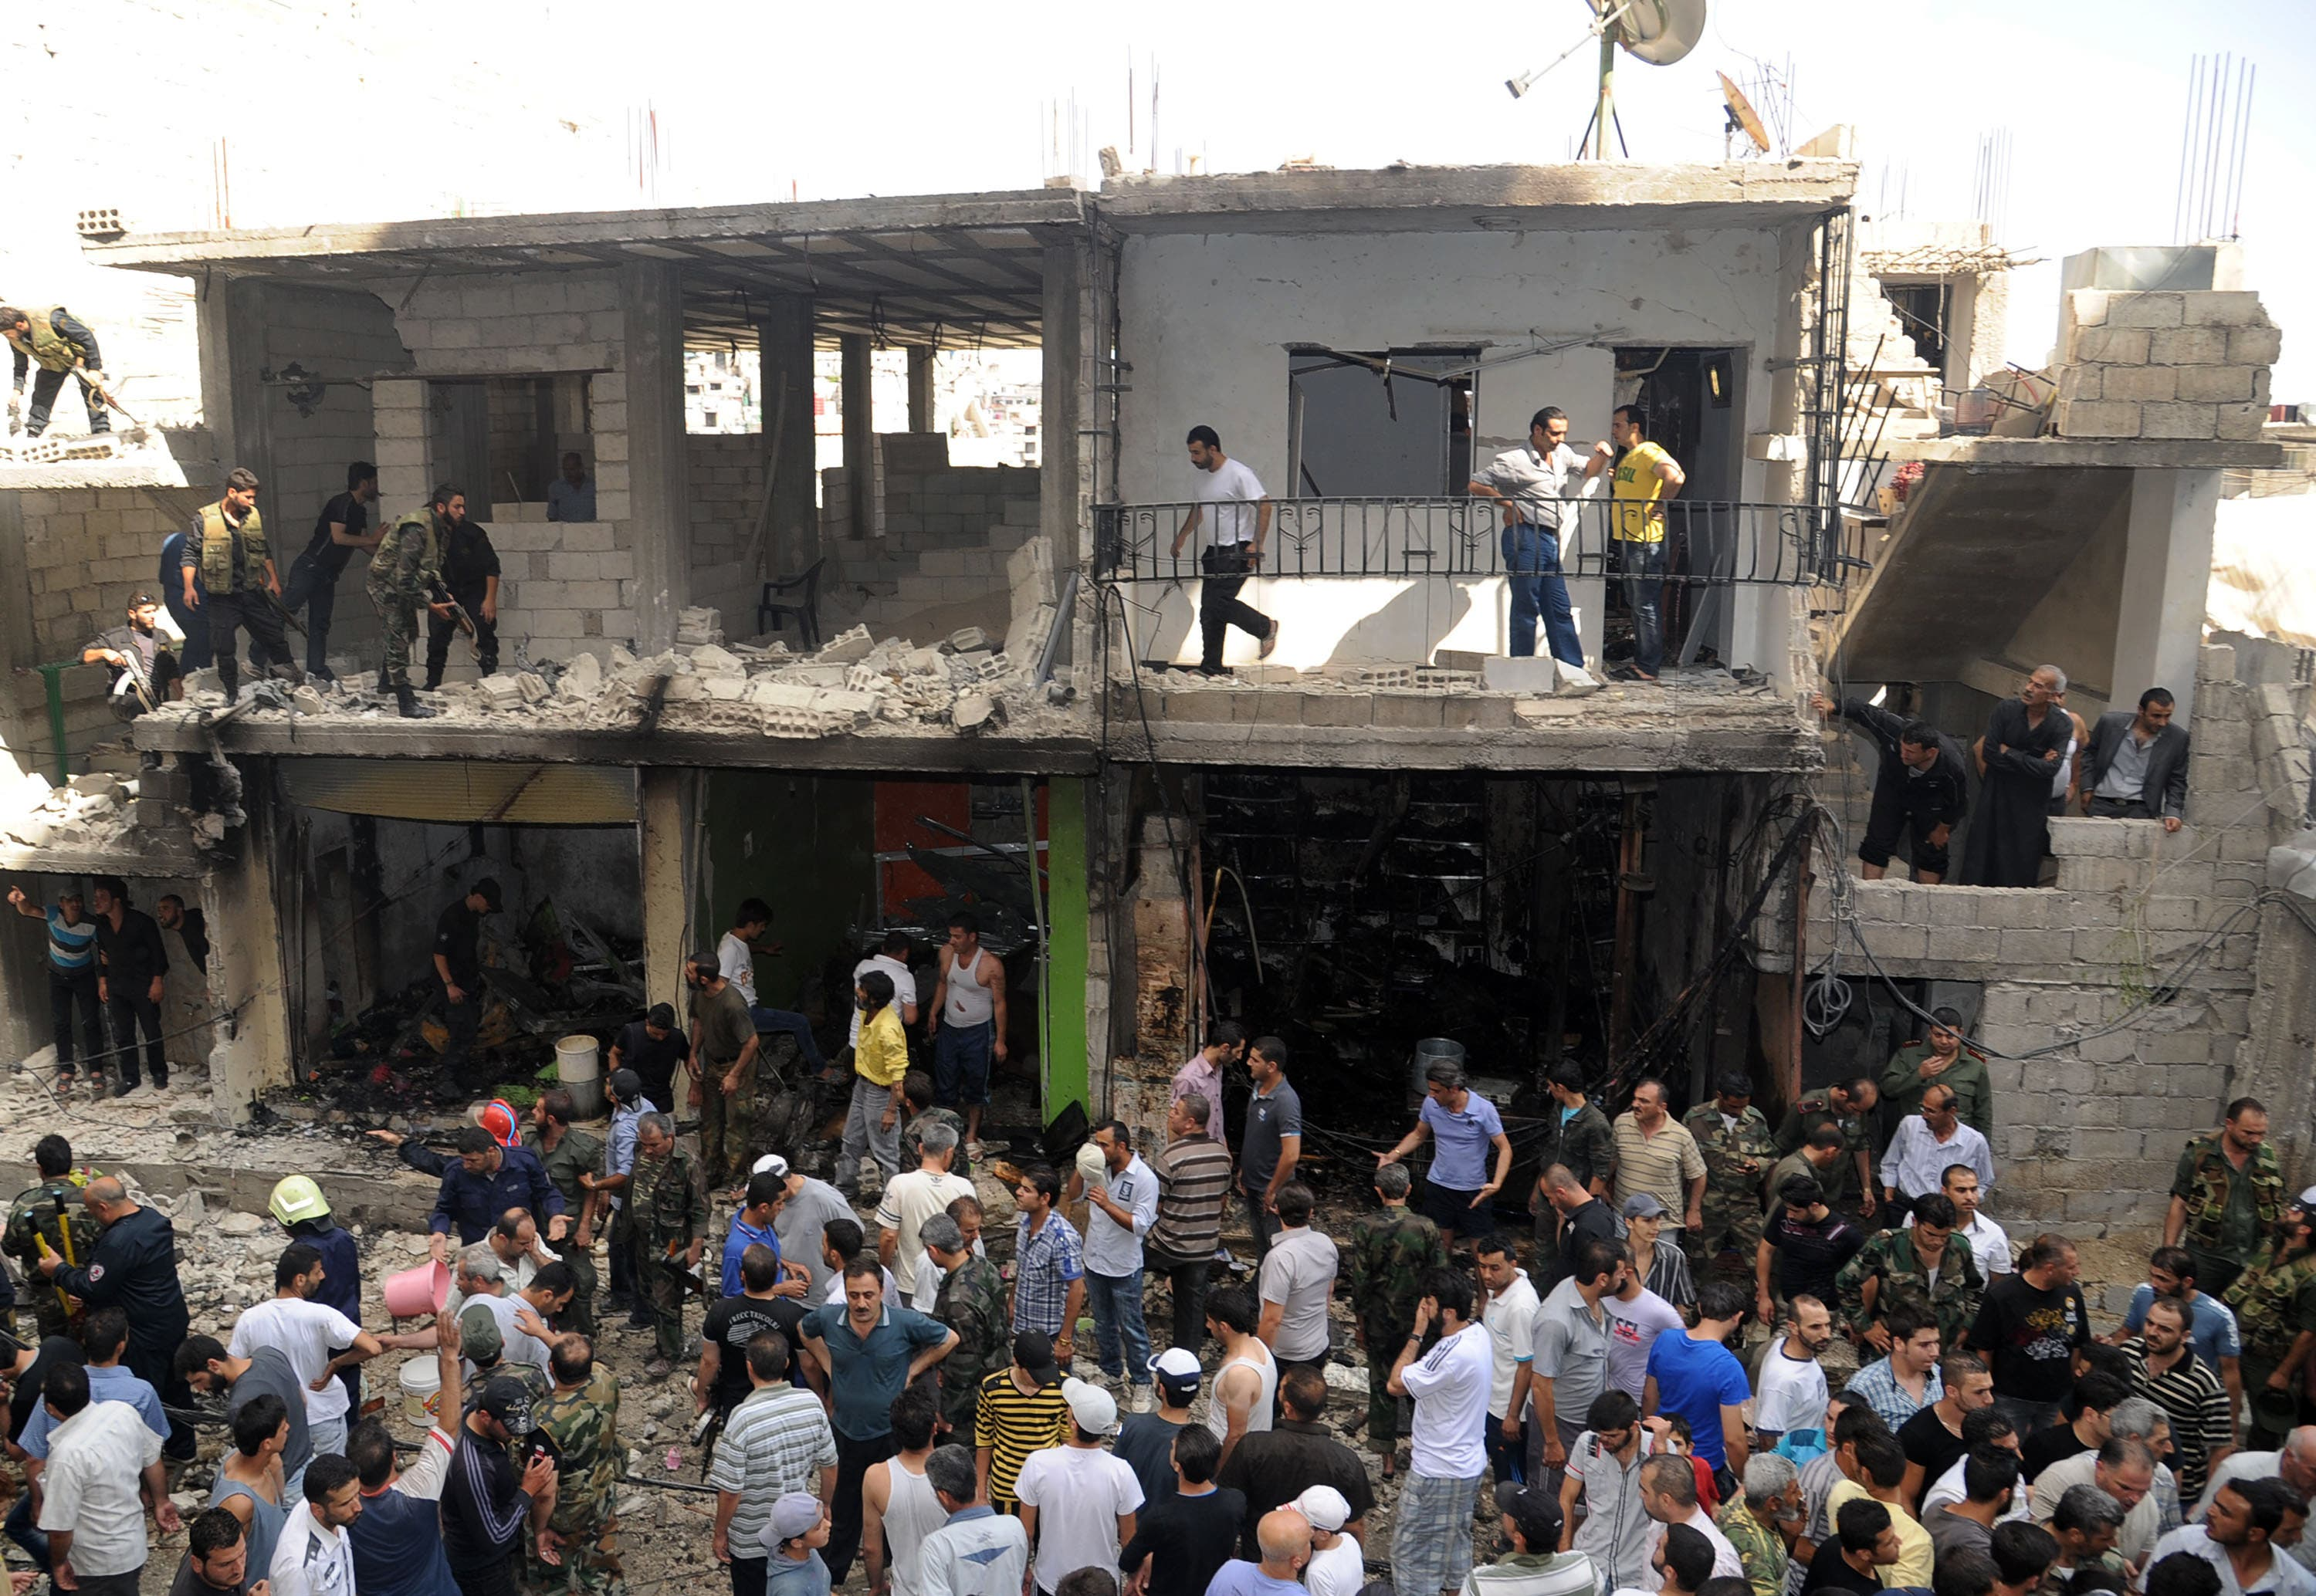 A handout picture released by the Syrian Arab News Agency (SANA) on June 23, 2013, shows civilians and security at the scene of a bombing in the Mazzeh 86 area of the Syrian capital Damascus. (Source: AFP/SANA)